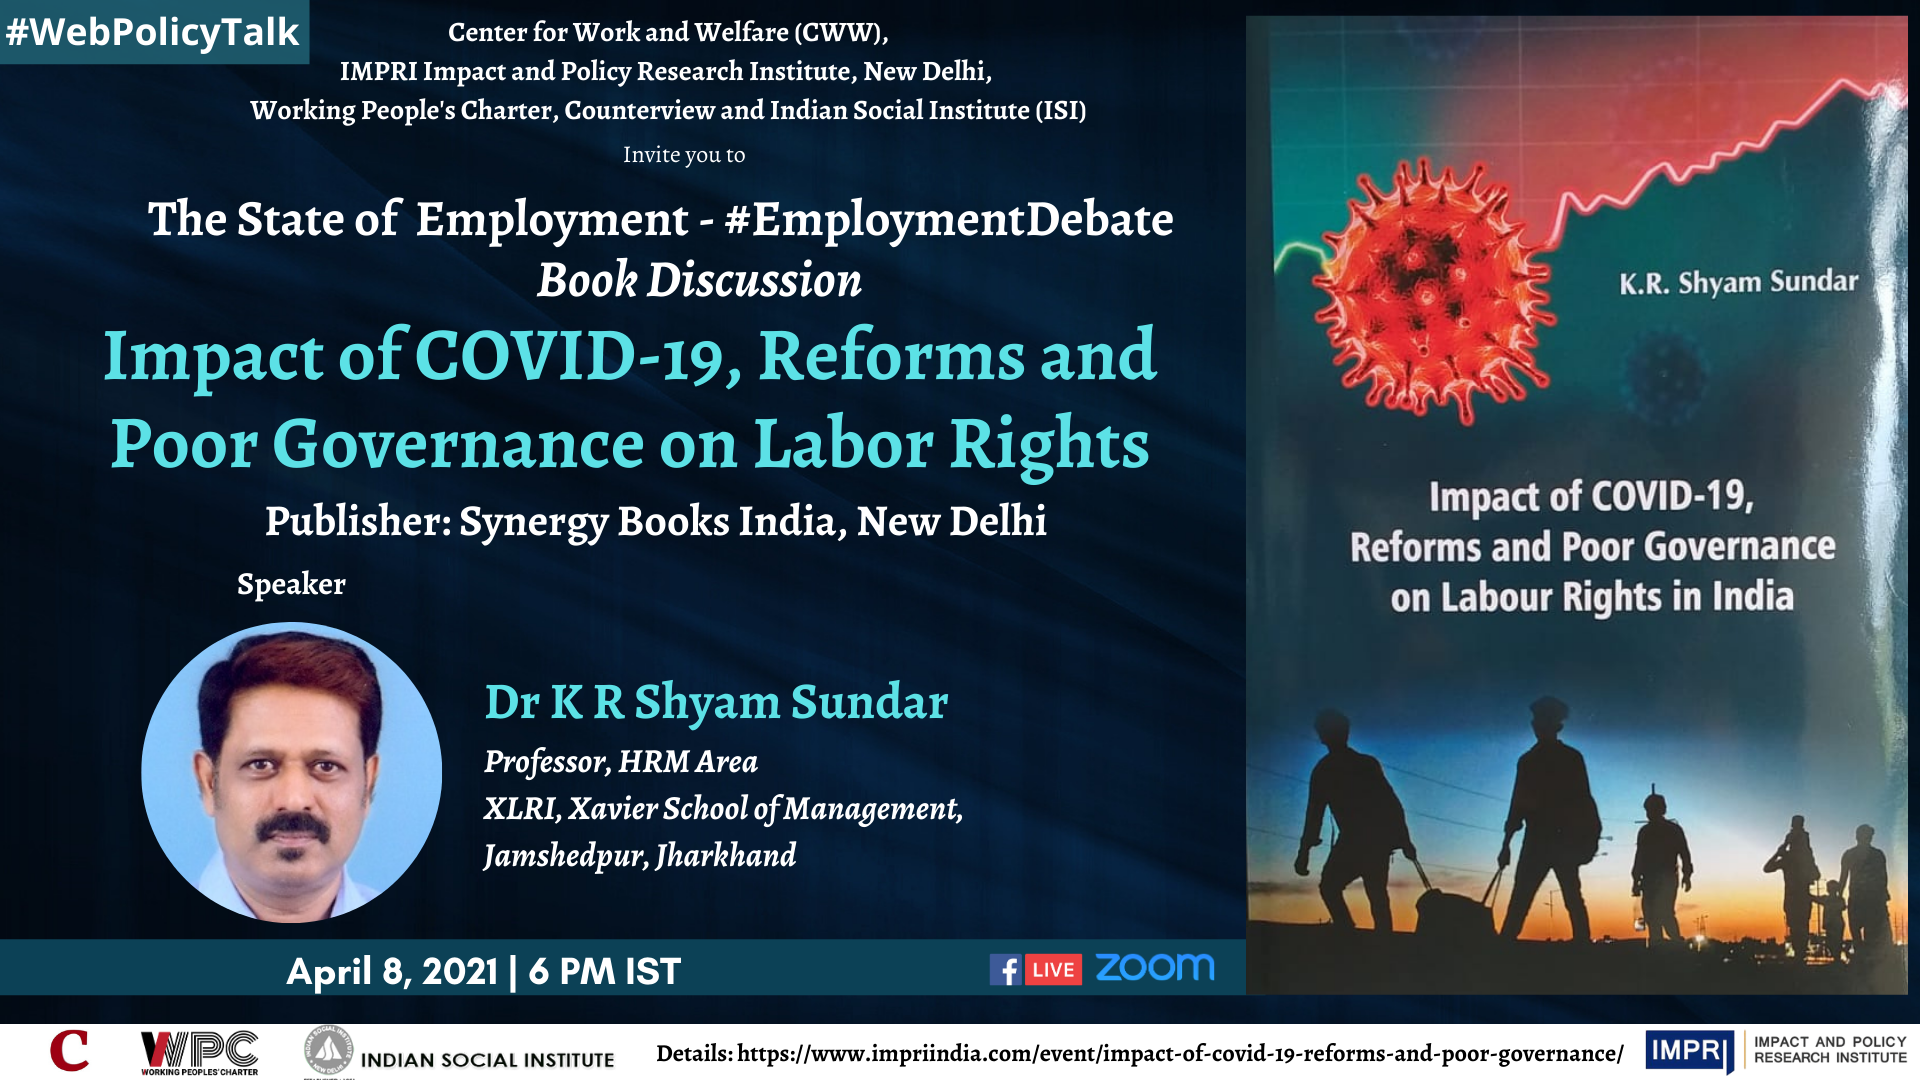 Impact of COVID-19, Reforms and Poor Governance on Labor Rights